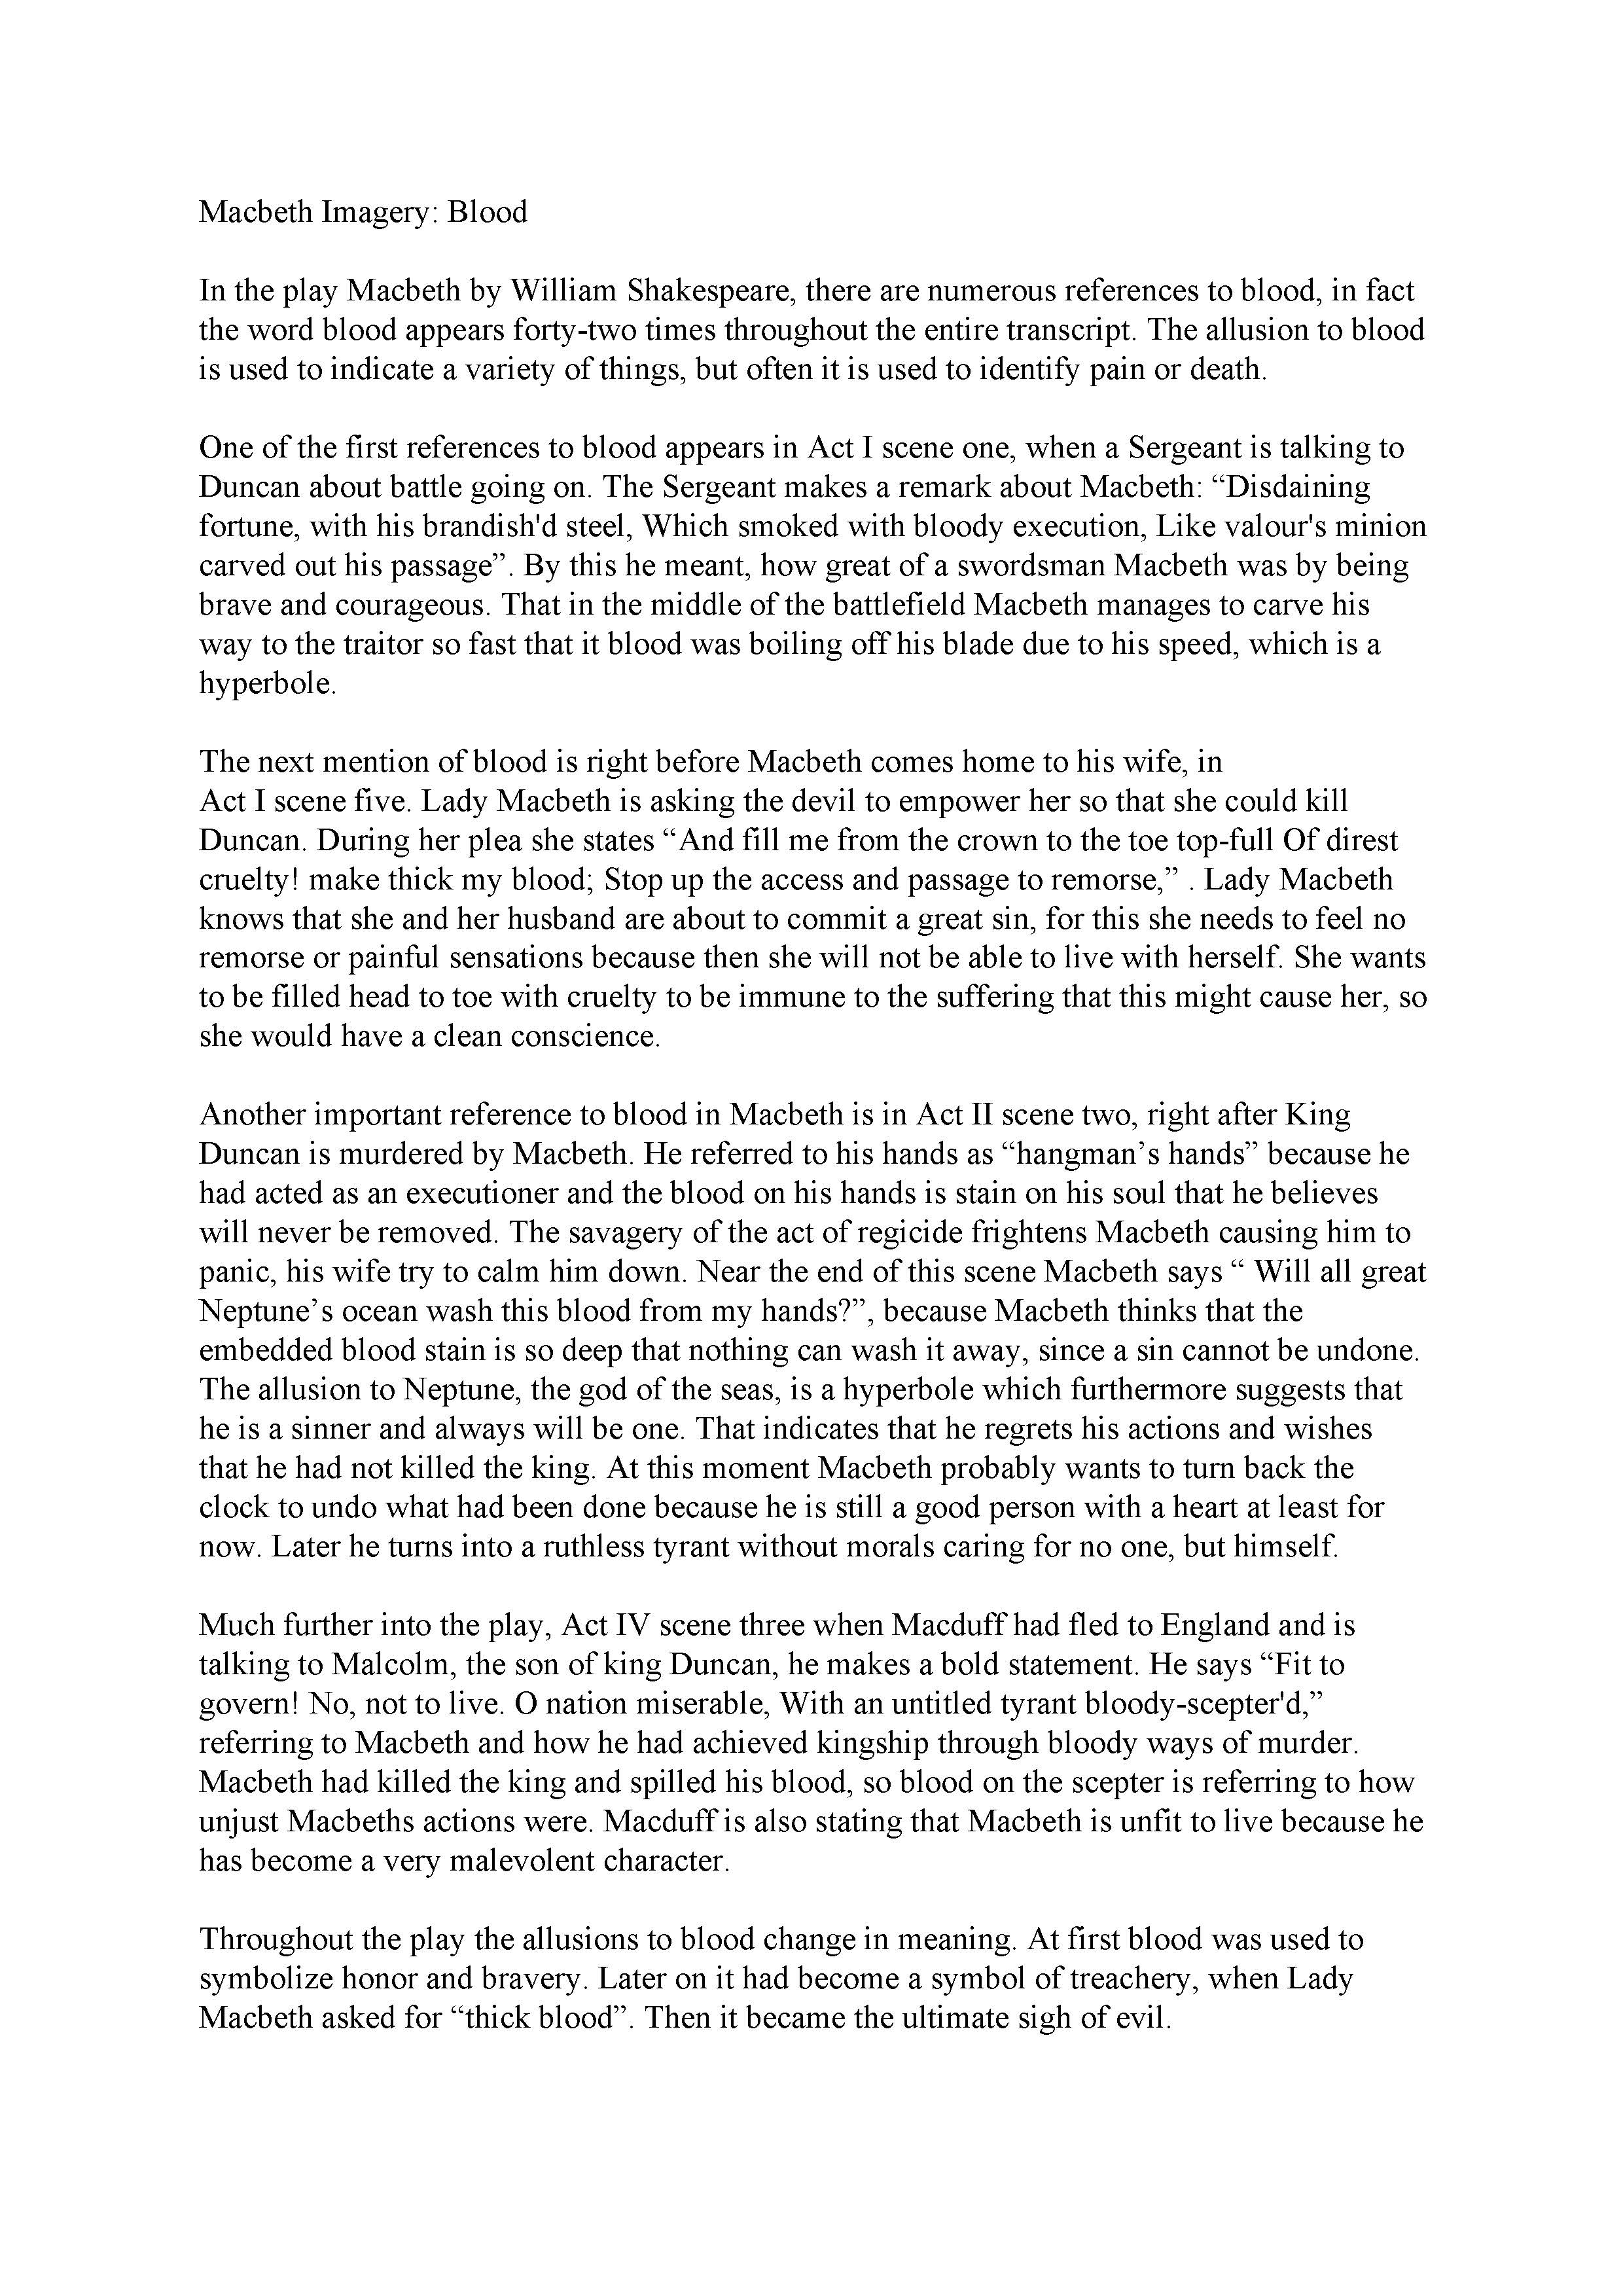 017 Macbeth Essay Sample How To Essays Excellent For 4th Grade Write Scholarships Full